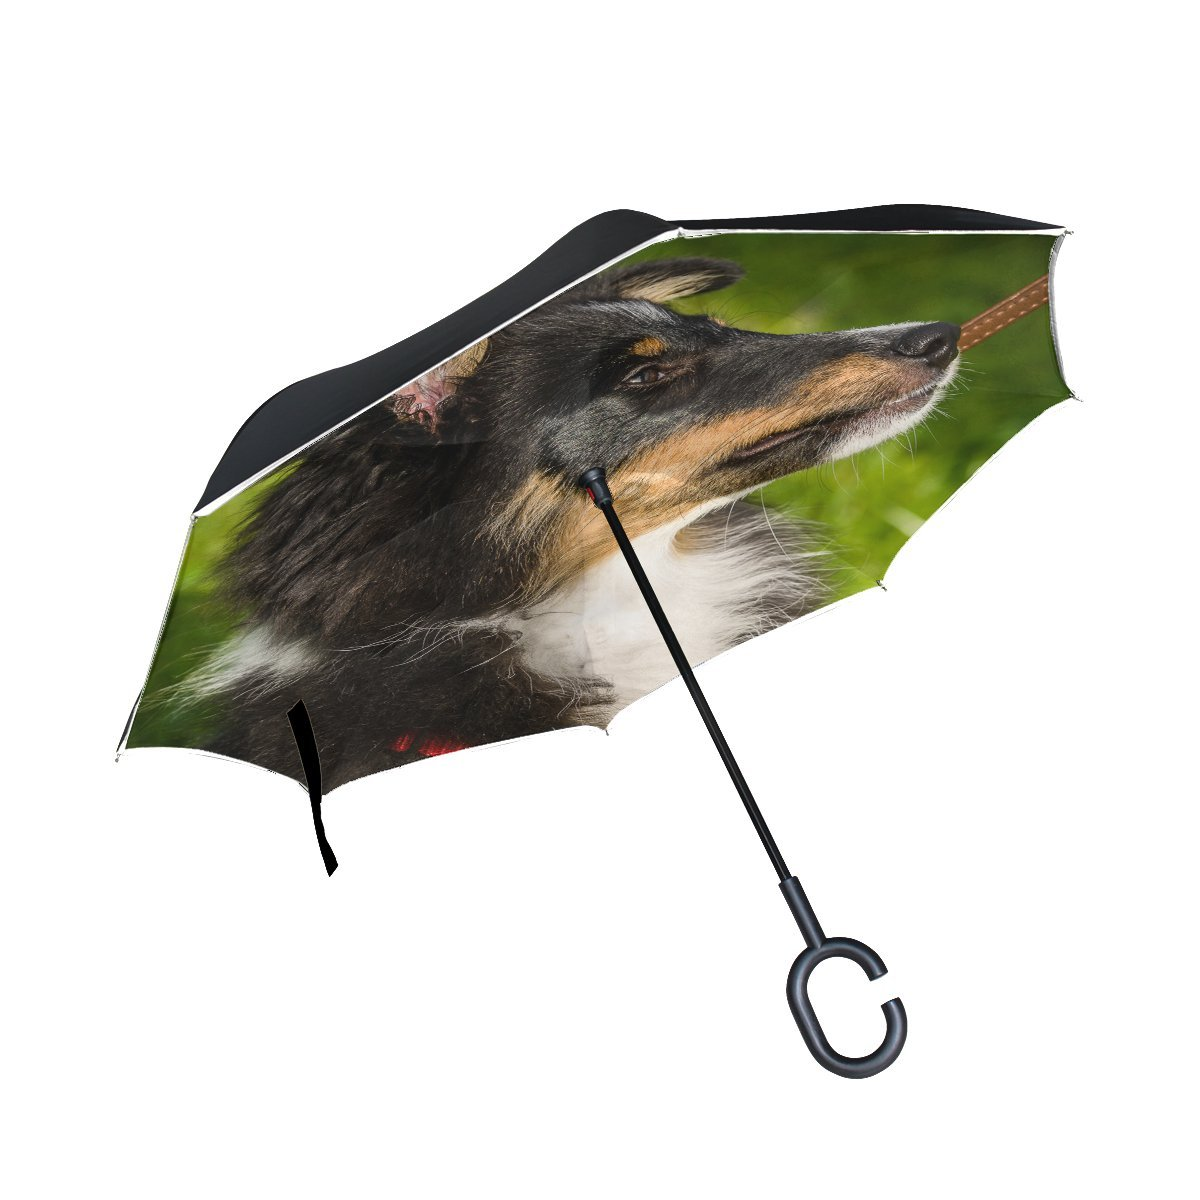 JOCHUAN Animal Dog Affenpinscher Blackandwhite Mix Fluffy Puppy Pet Inverted Umbrella Large Double Layer Outdoor Rain Sun Car Reversible Umbrella